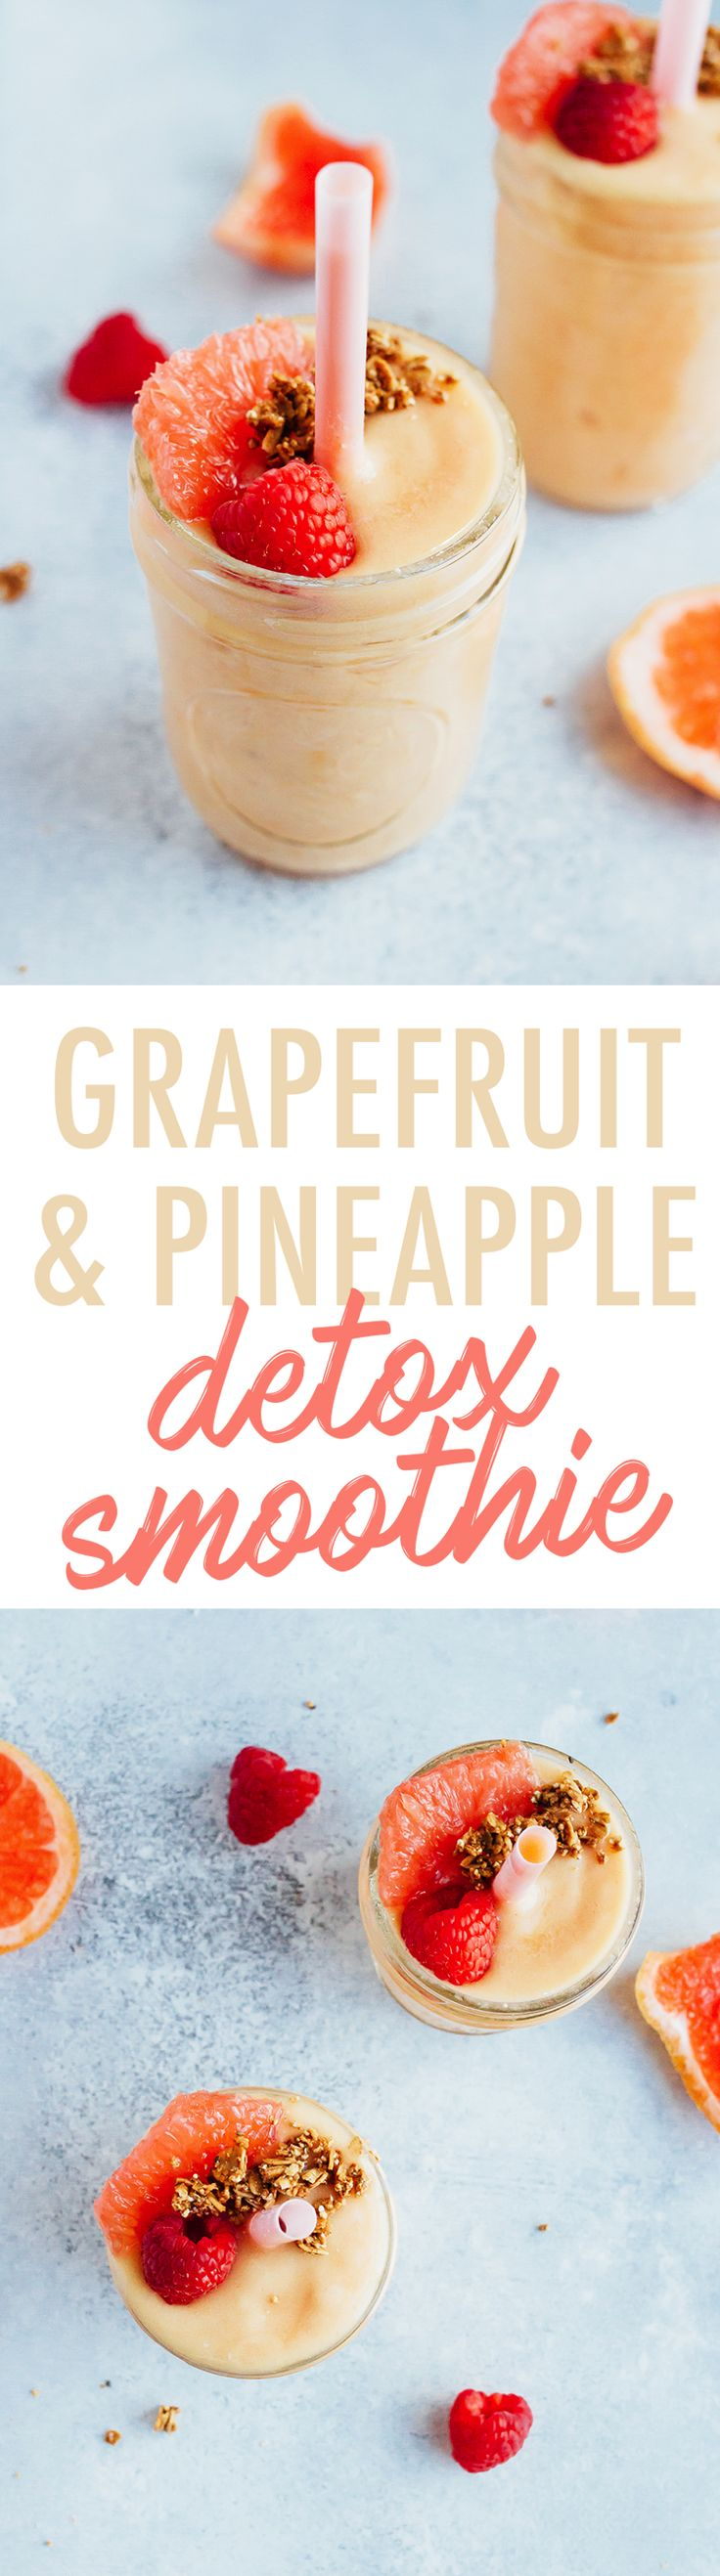 Banish bloating and boost your metabolism with this delicious Grapefruit Pineapple DETOX Smoothie